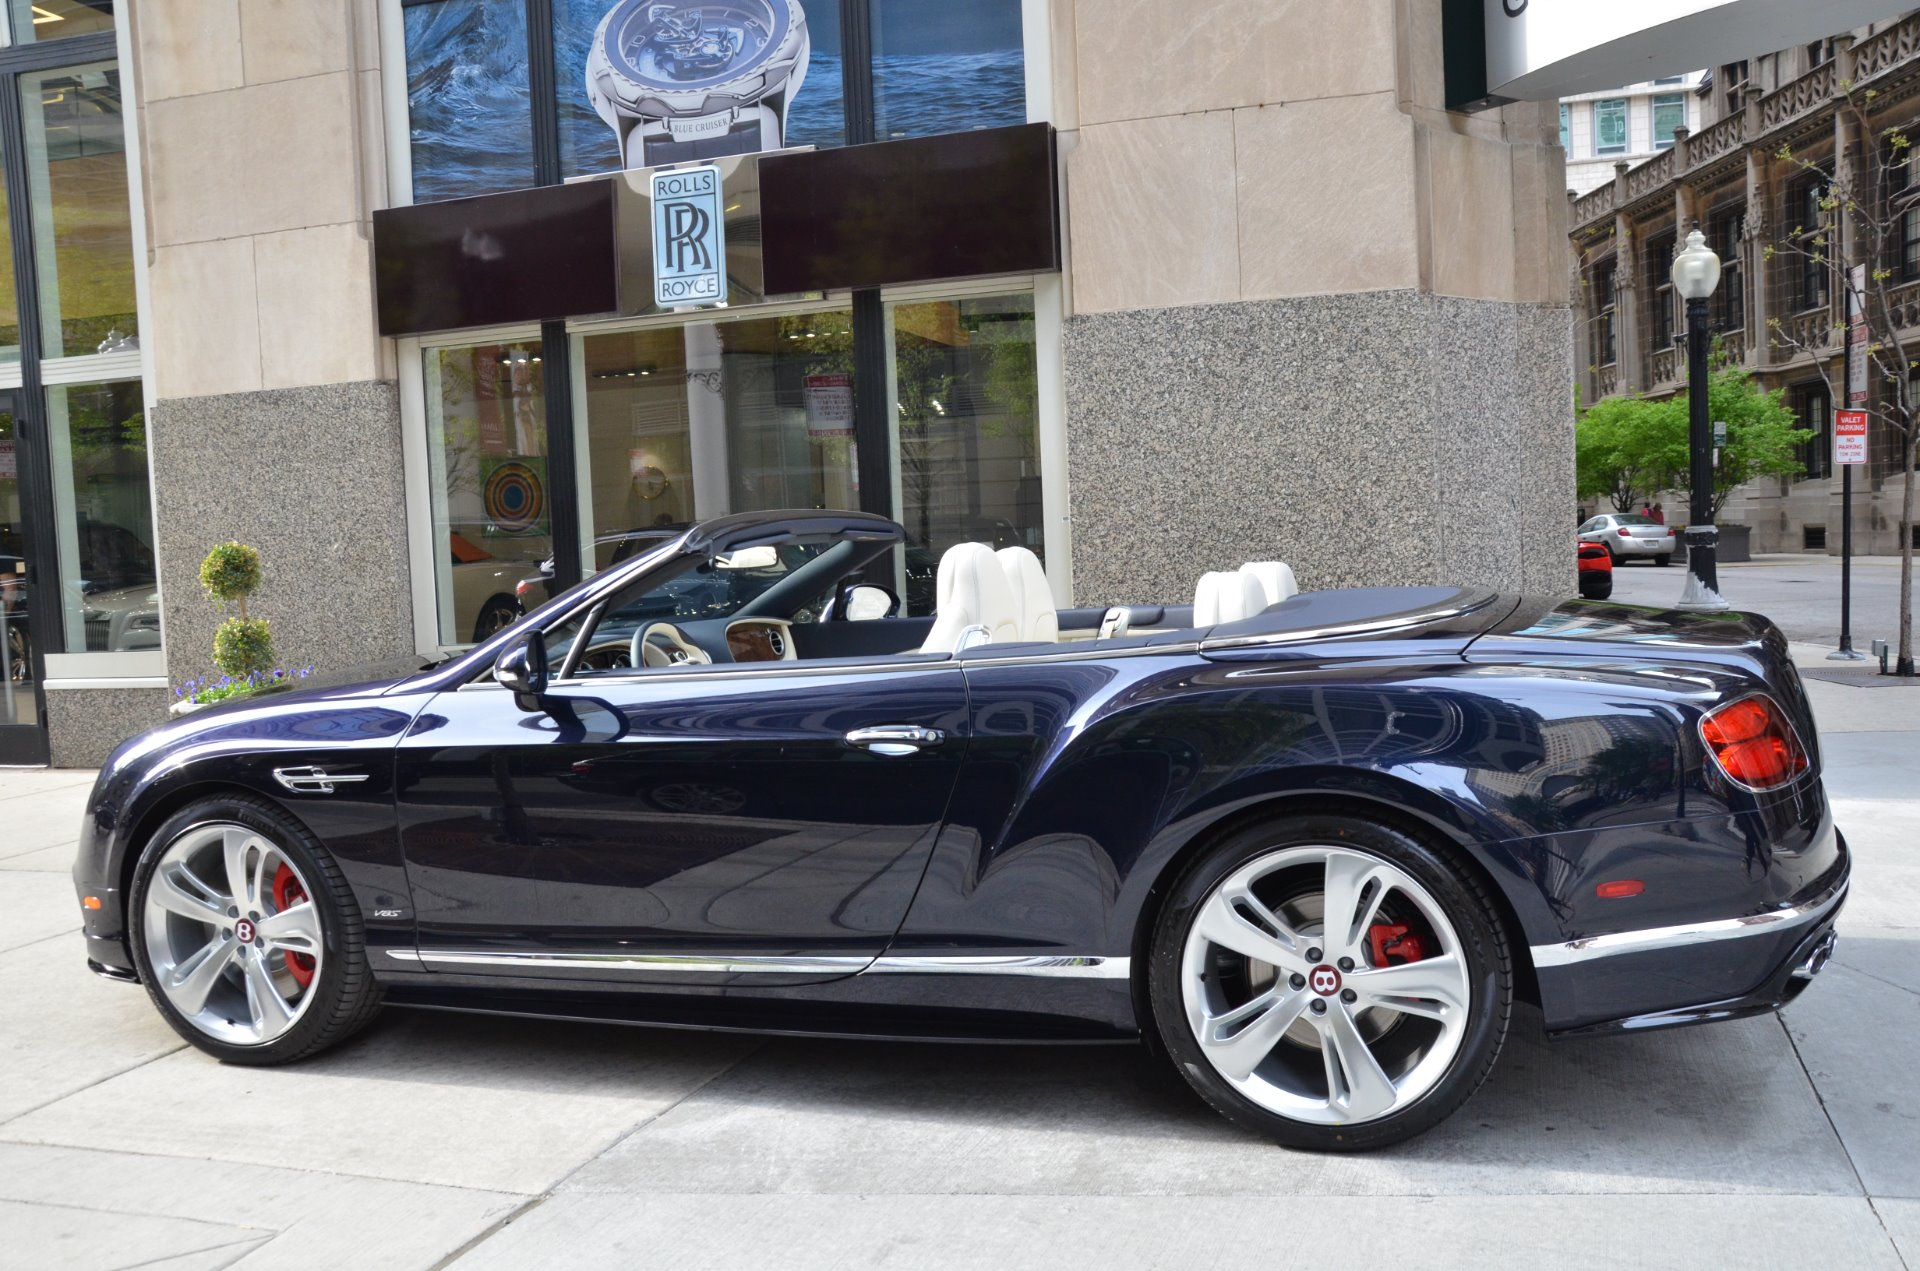 2017 Bentley Continental Gt V8 Convertible Stock B924 S For Sale Near Chicago Il Il Bentley Dealer